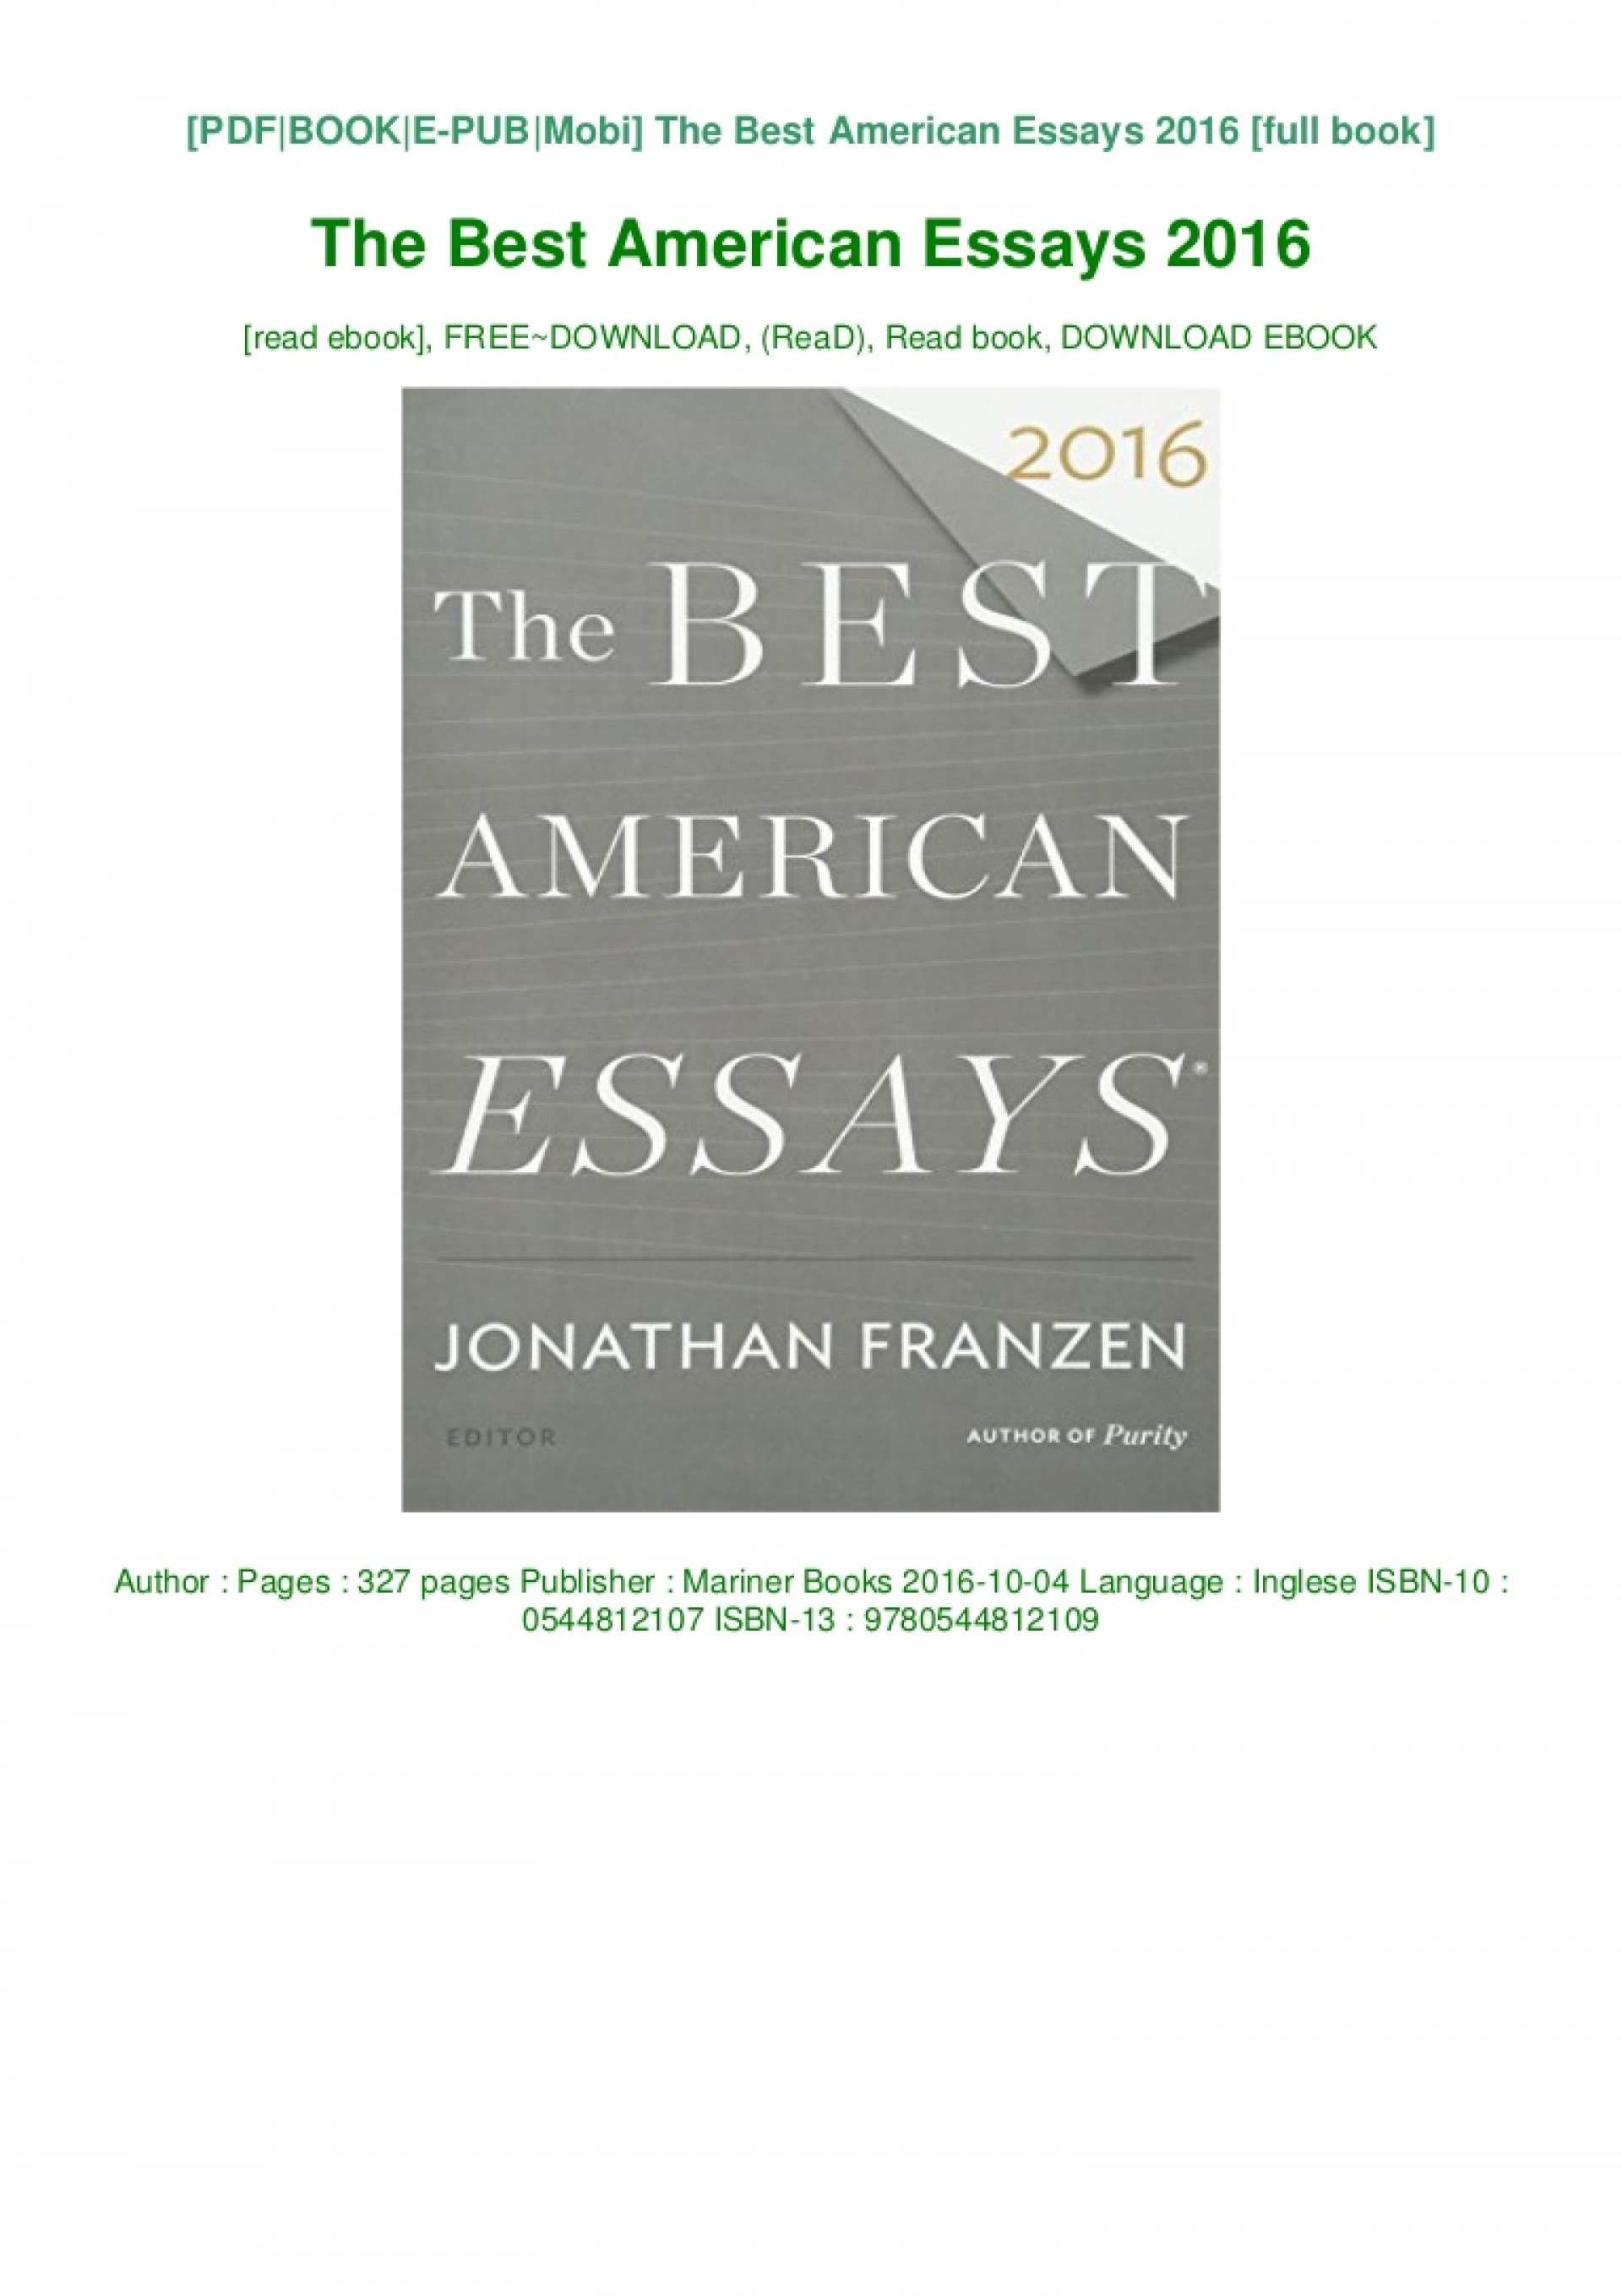 014 The Best American Essays Essay Example Download Pdf Epub Audiobook Ebook Thumbnail Wonderful 2018 2017 Table Of Contents 2015 Free 1920